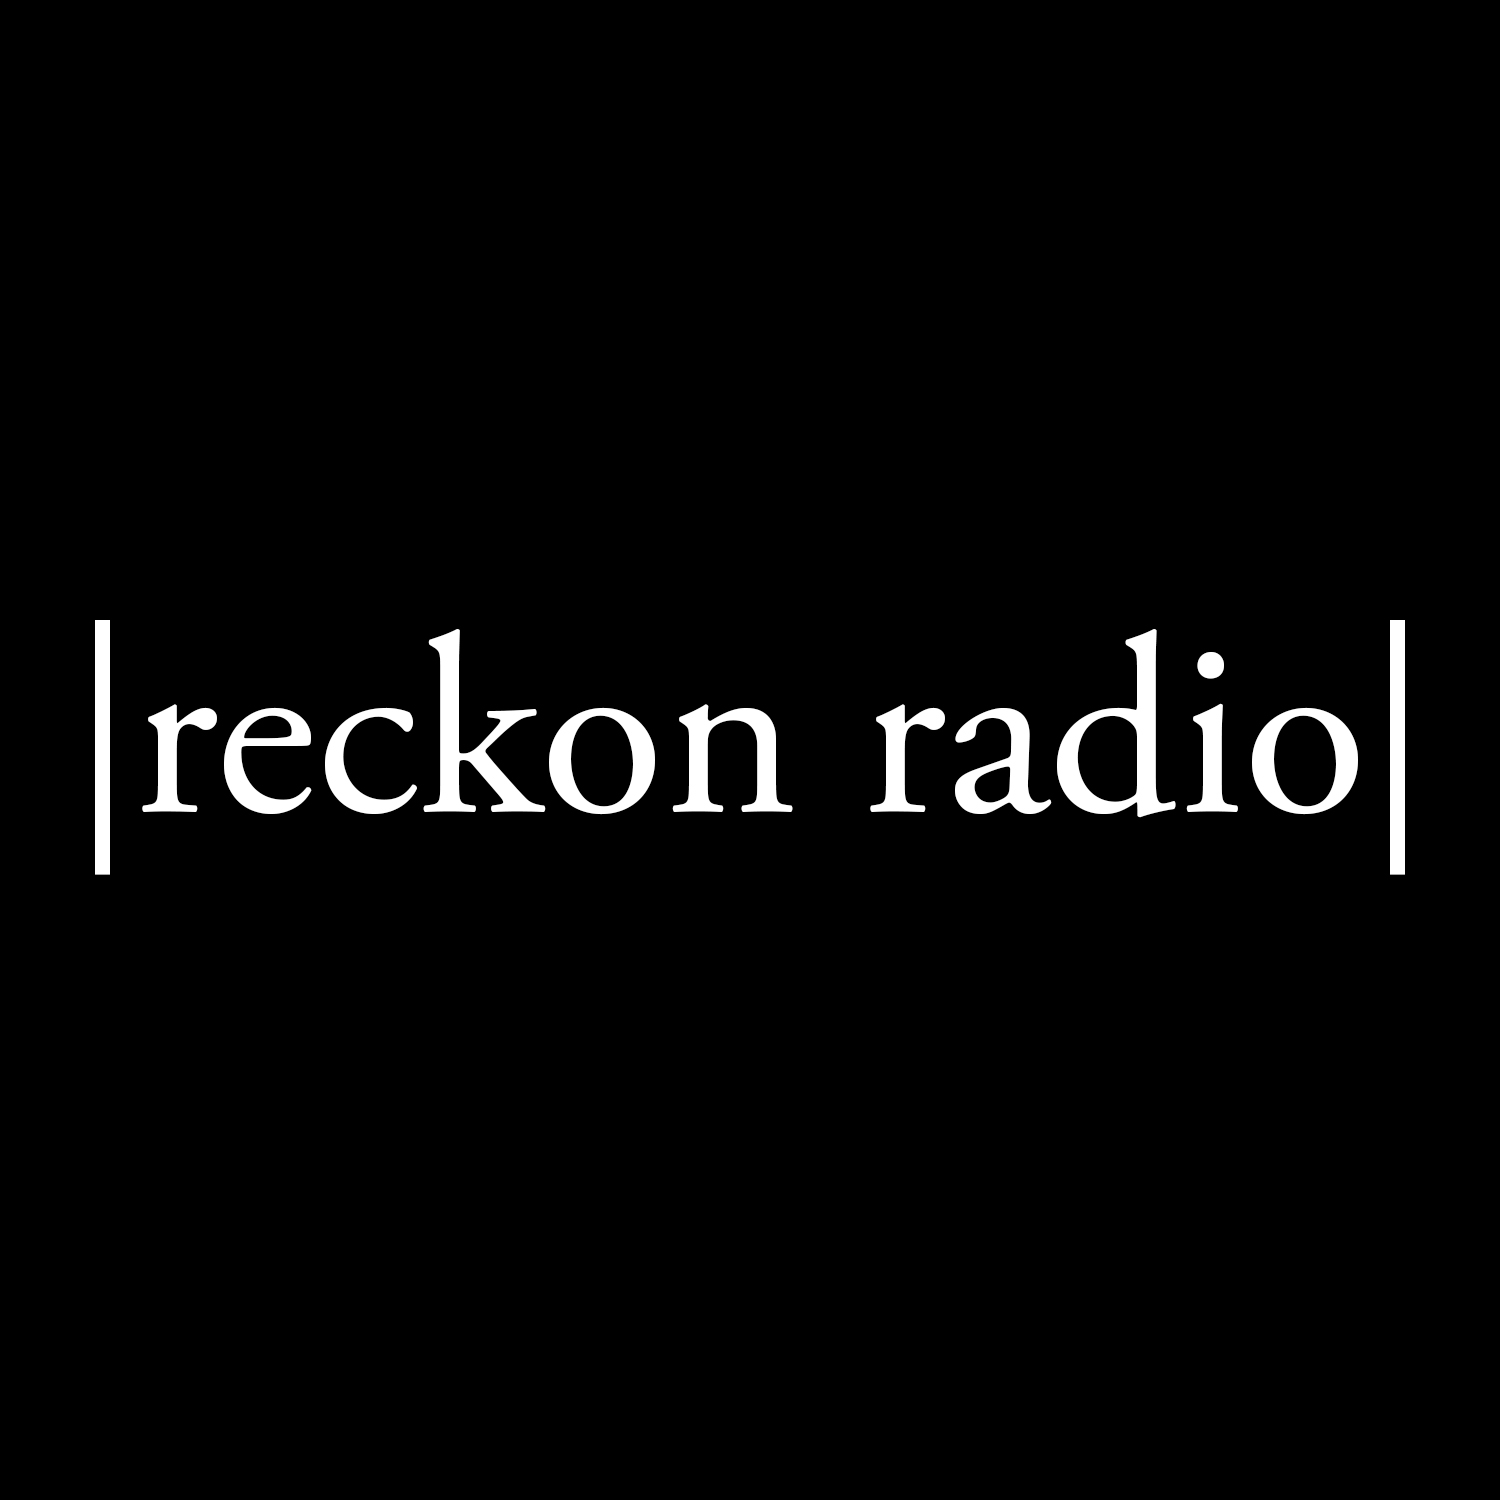 Reckon Radio